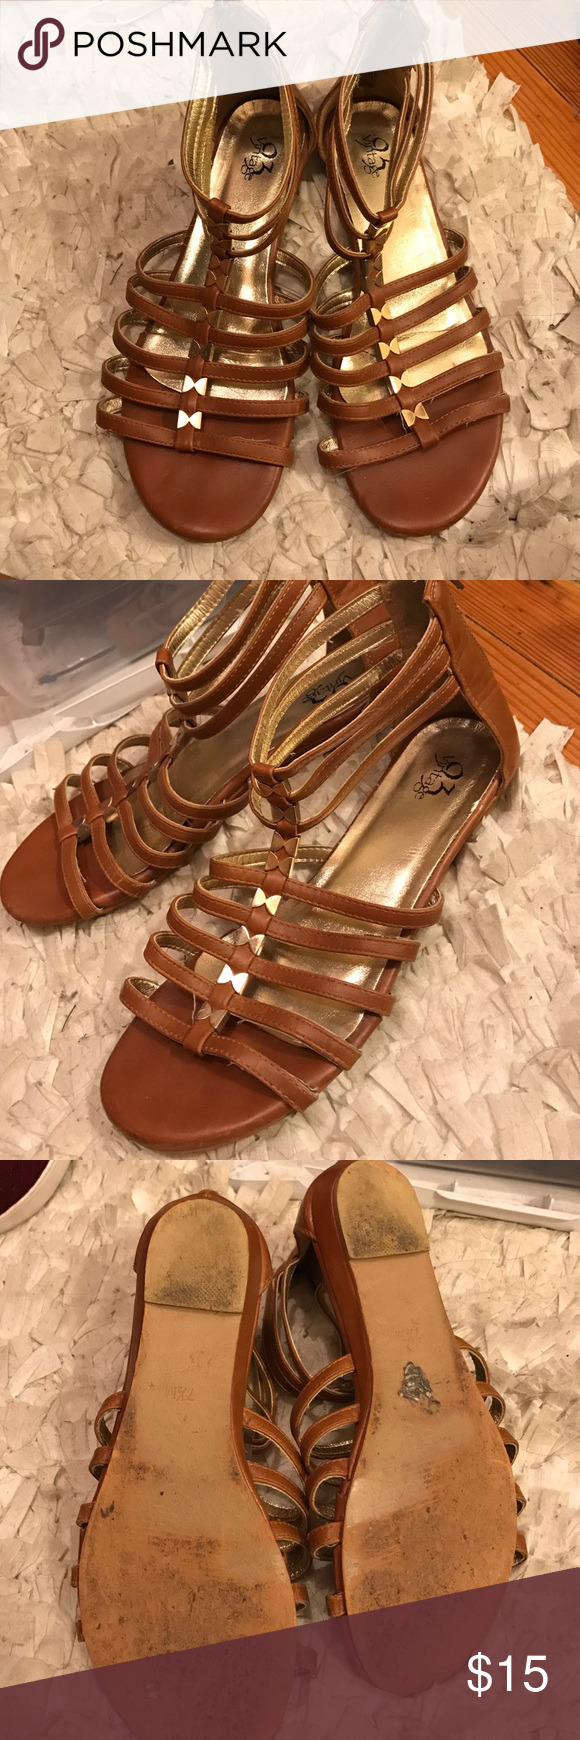 Brown bowed gladiators Size 7.5 gladiators. Got them from Francesca's collection! Don't wear anymore but really cute for the summer. It has gold bows on the front! Francesca's Collections Shoes Sandals